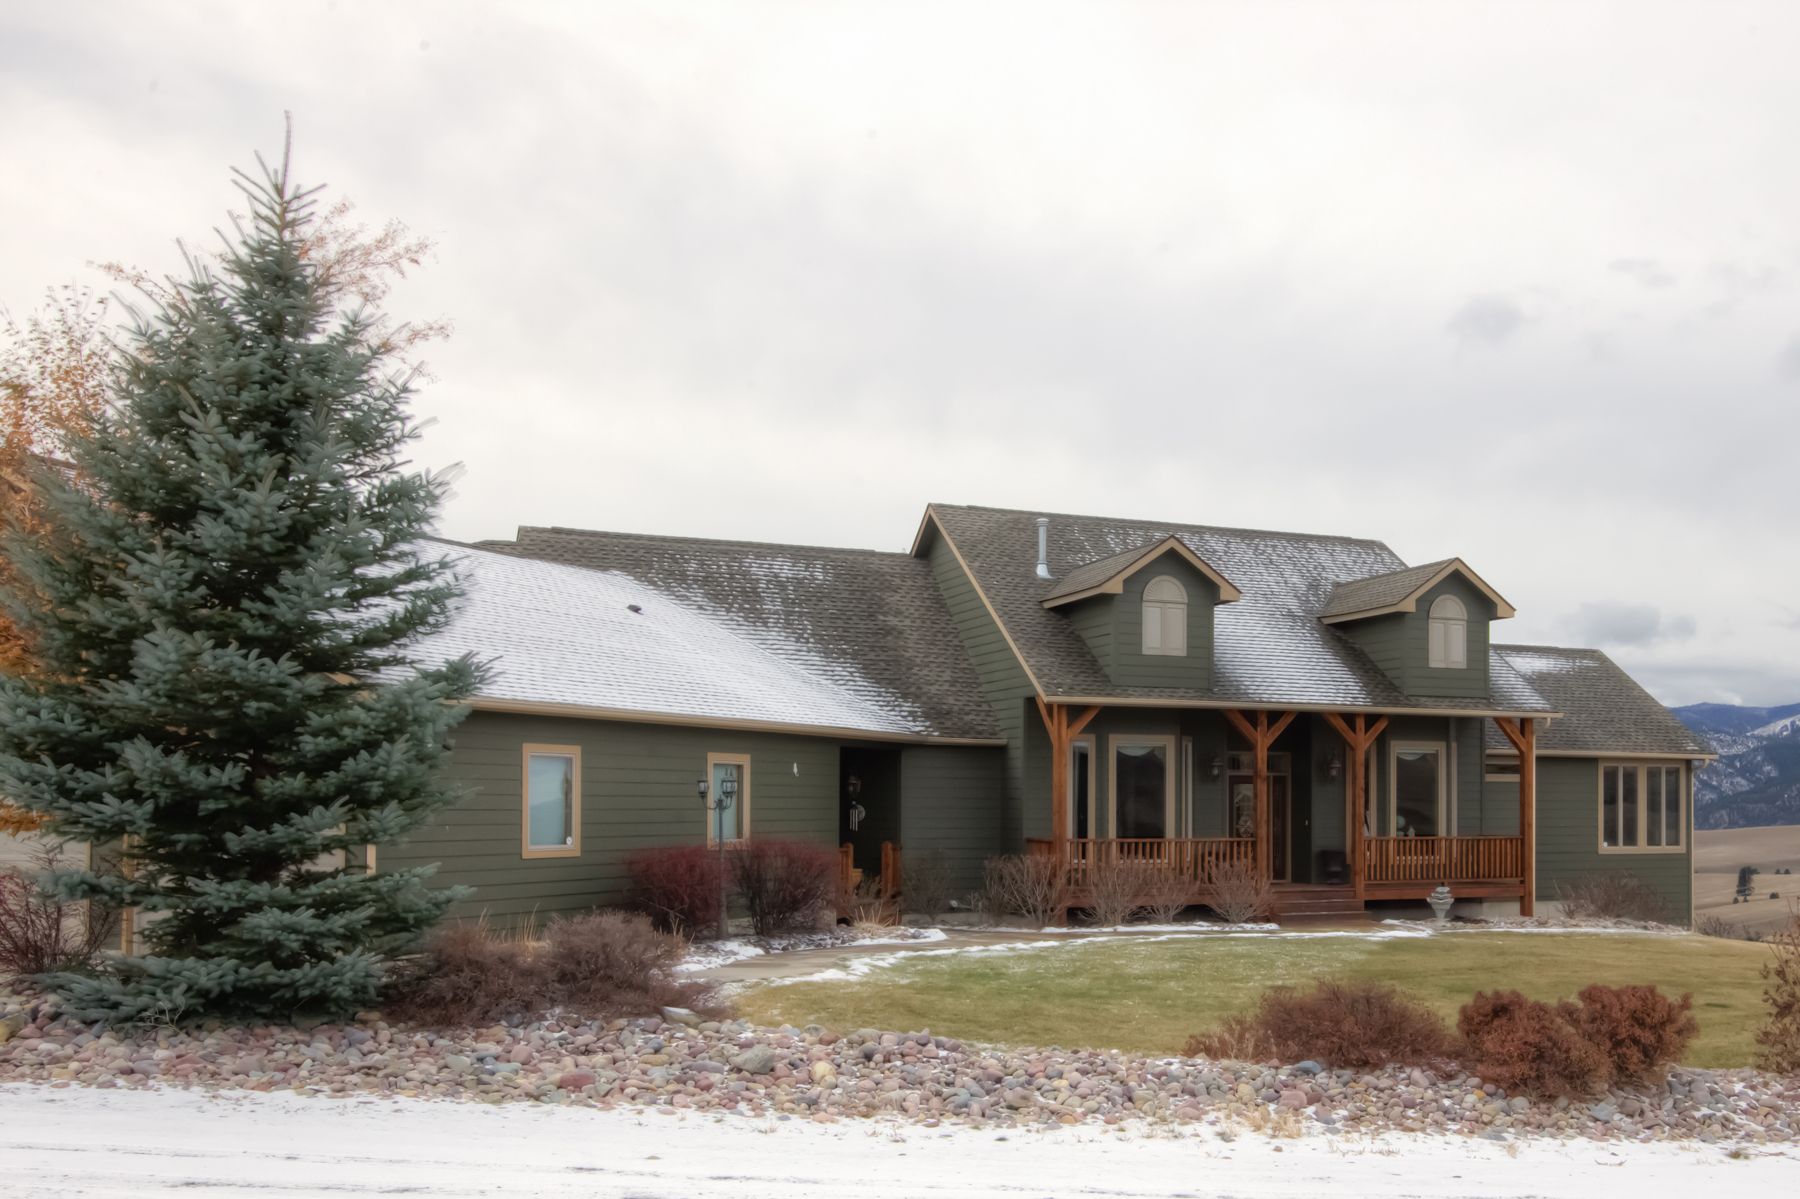 Single Family Home for Sale at 3105 Evans Ridge Road Missoula, Montana 59803 United States